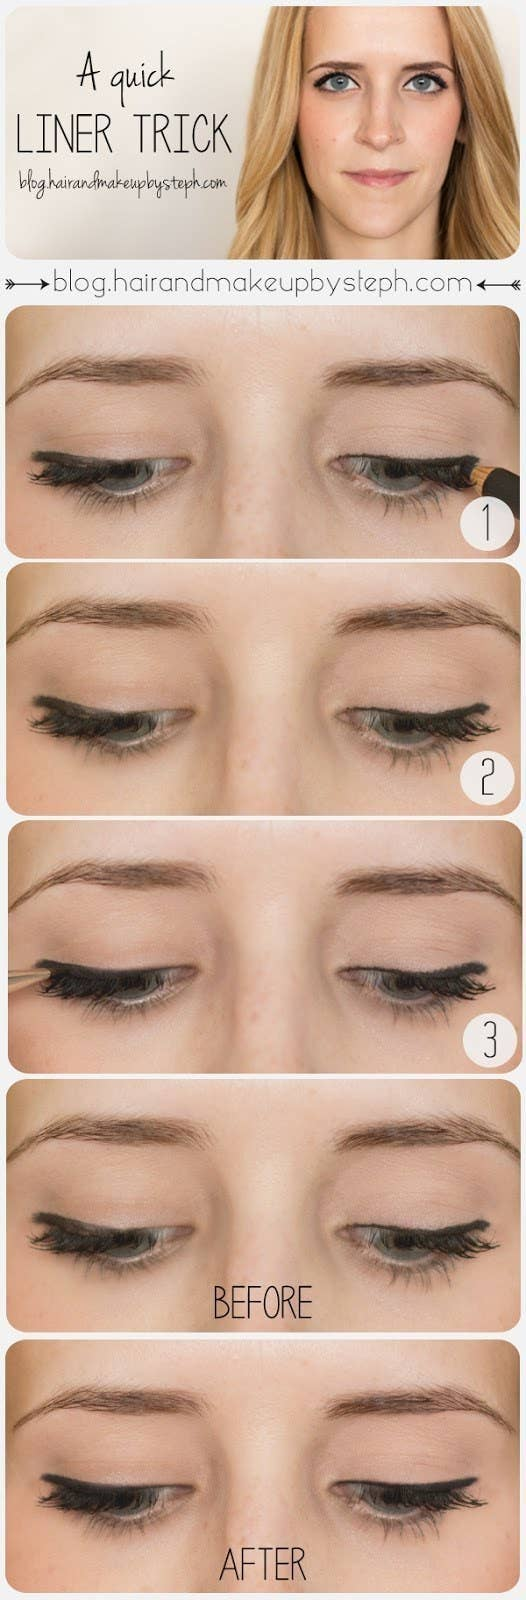 8 Useful Tips For People Who Suck At Eyeliner